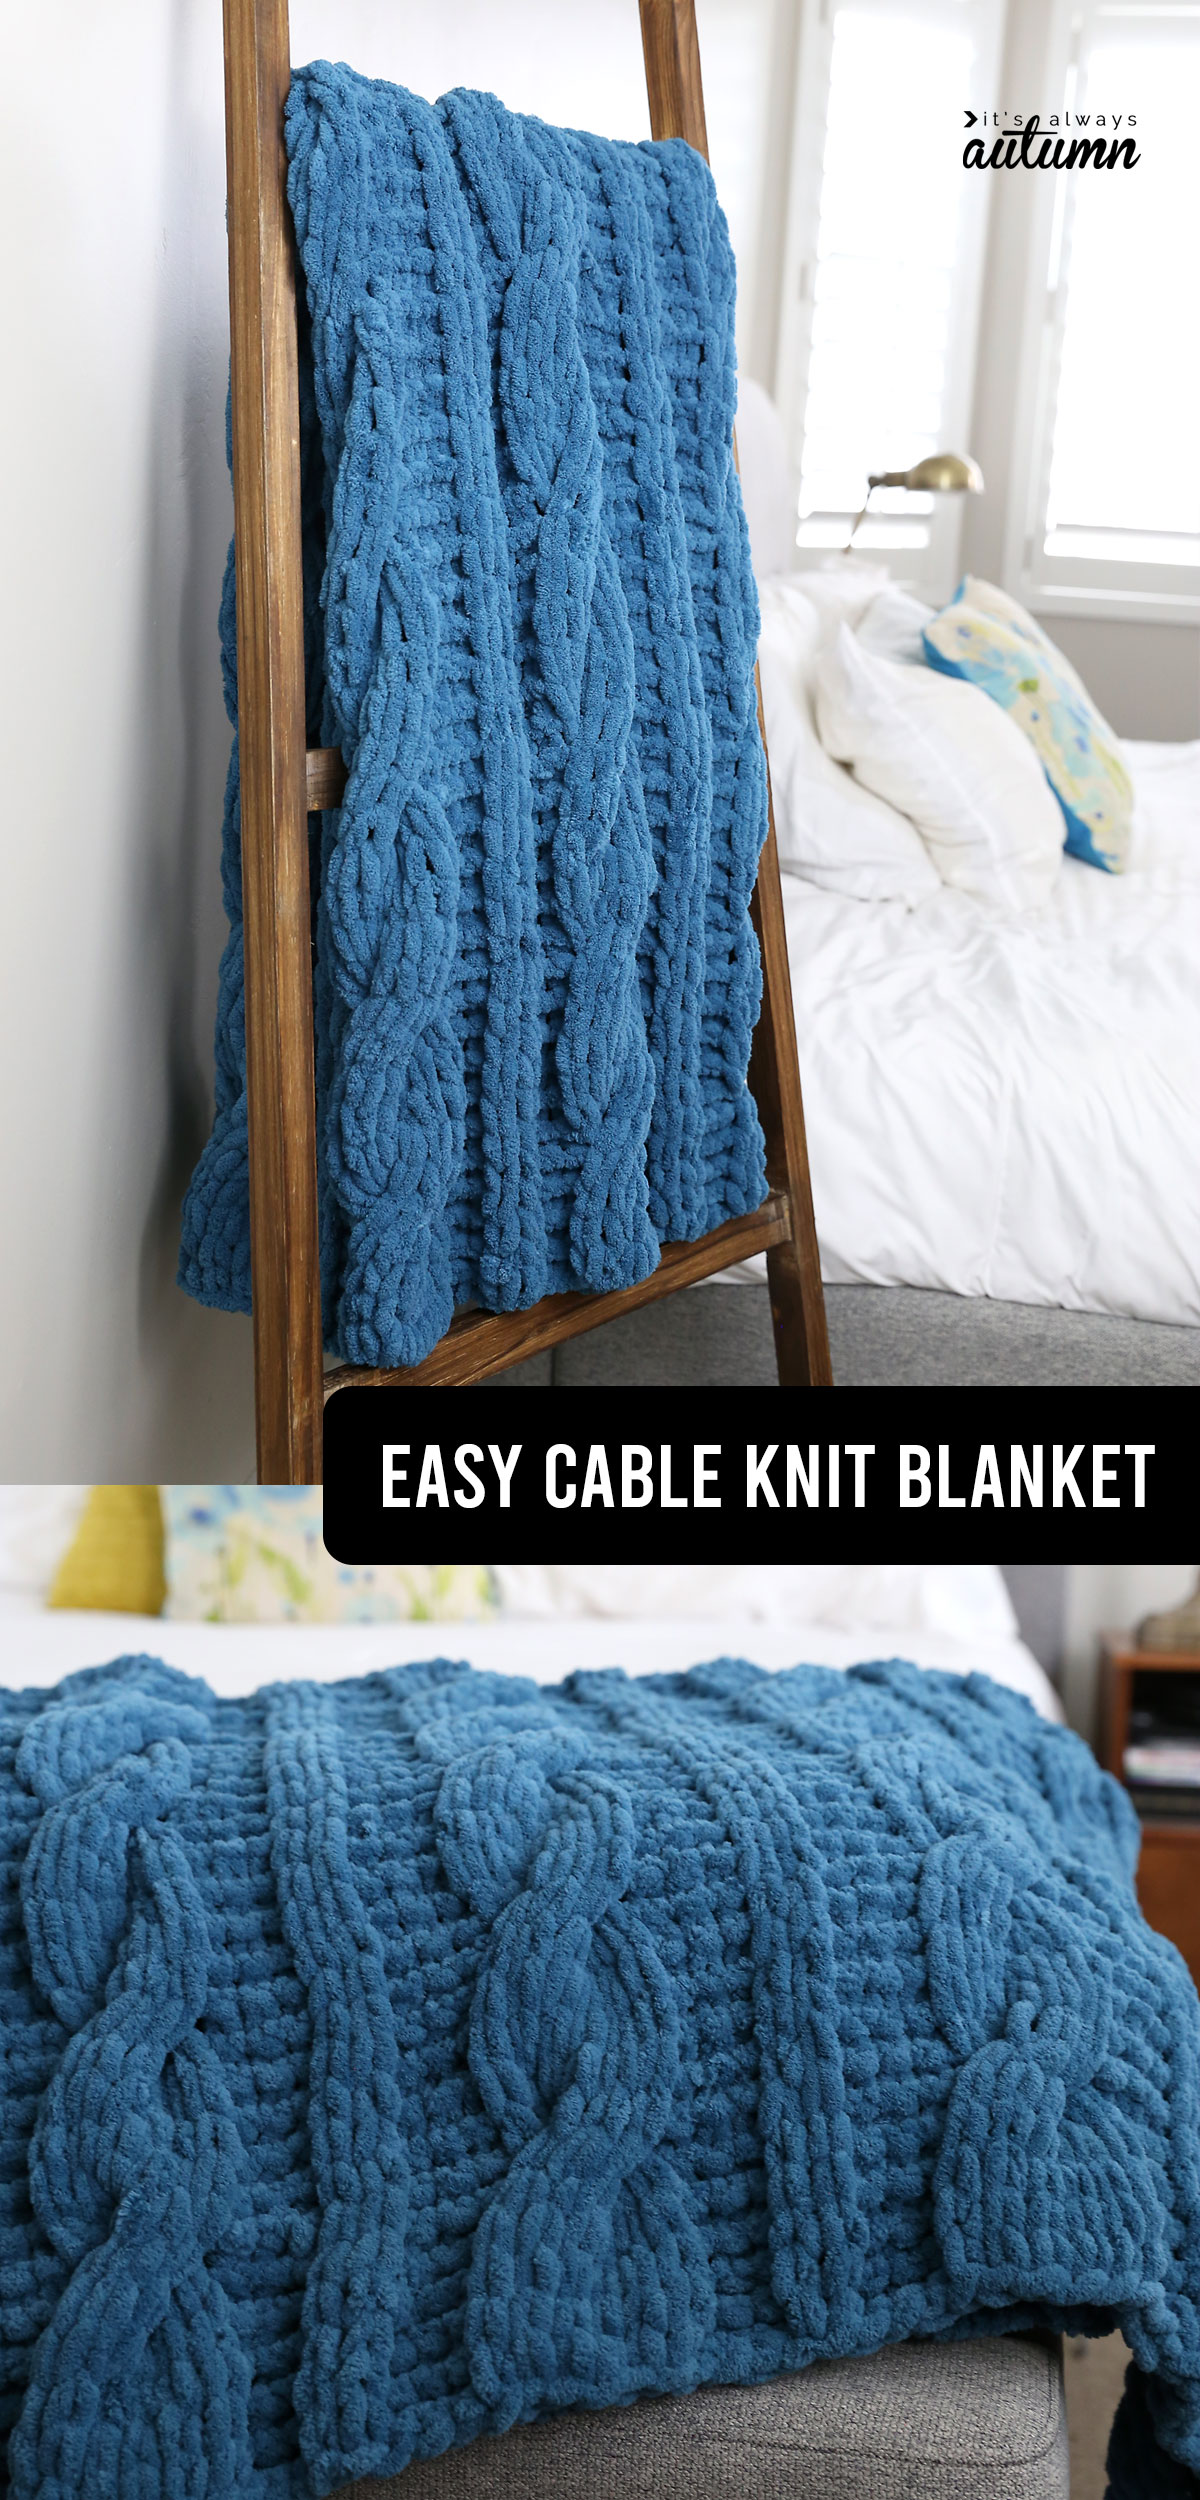 handmade blue cable knit blanket on a blanket ladder, on a bed